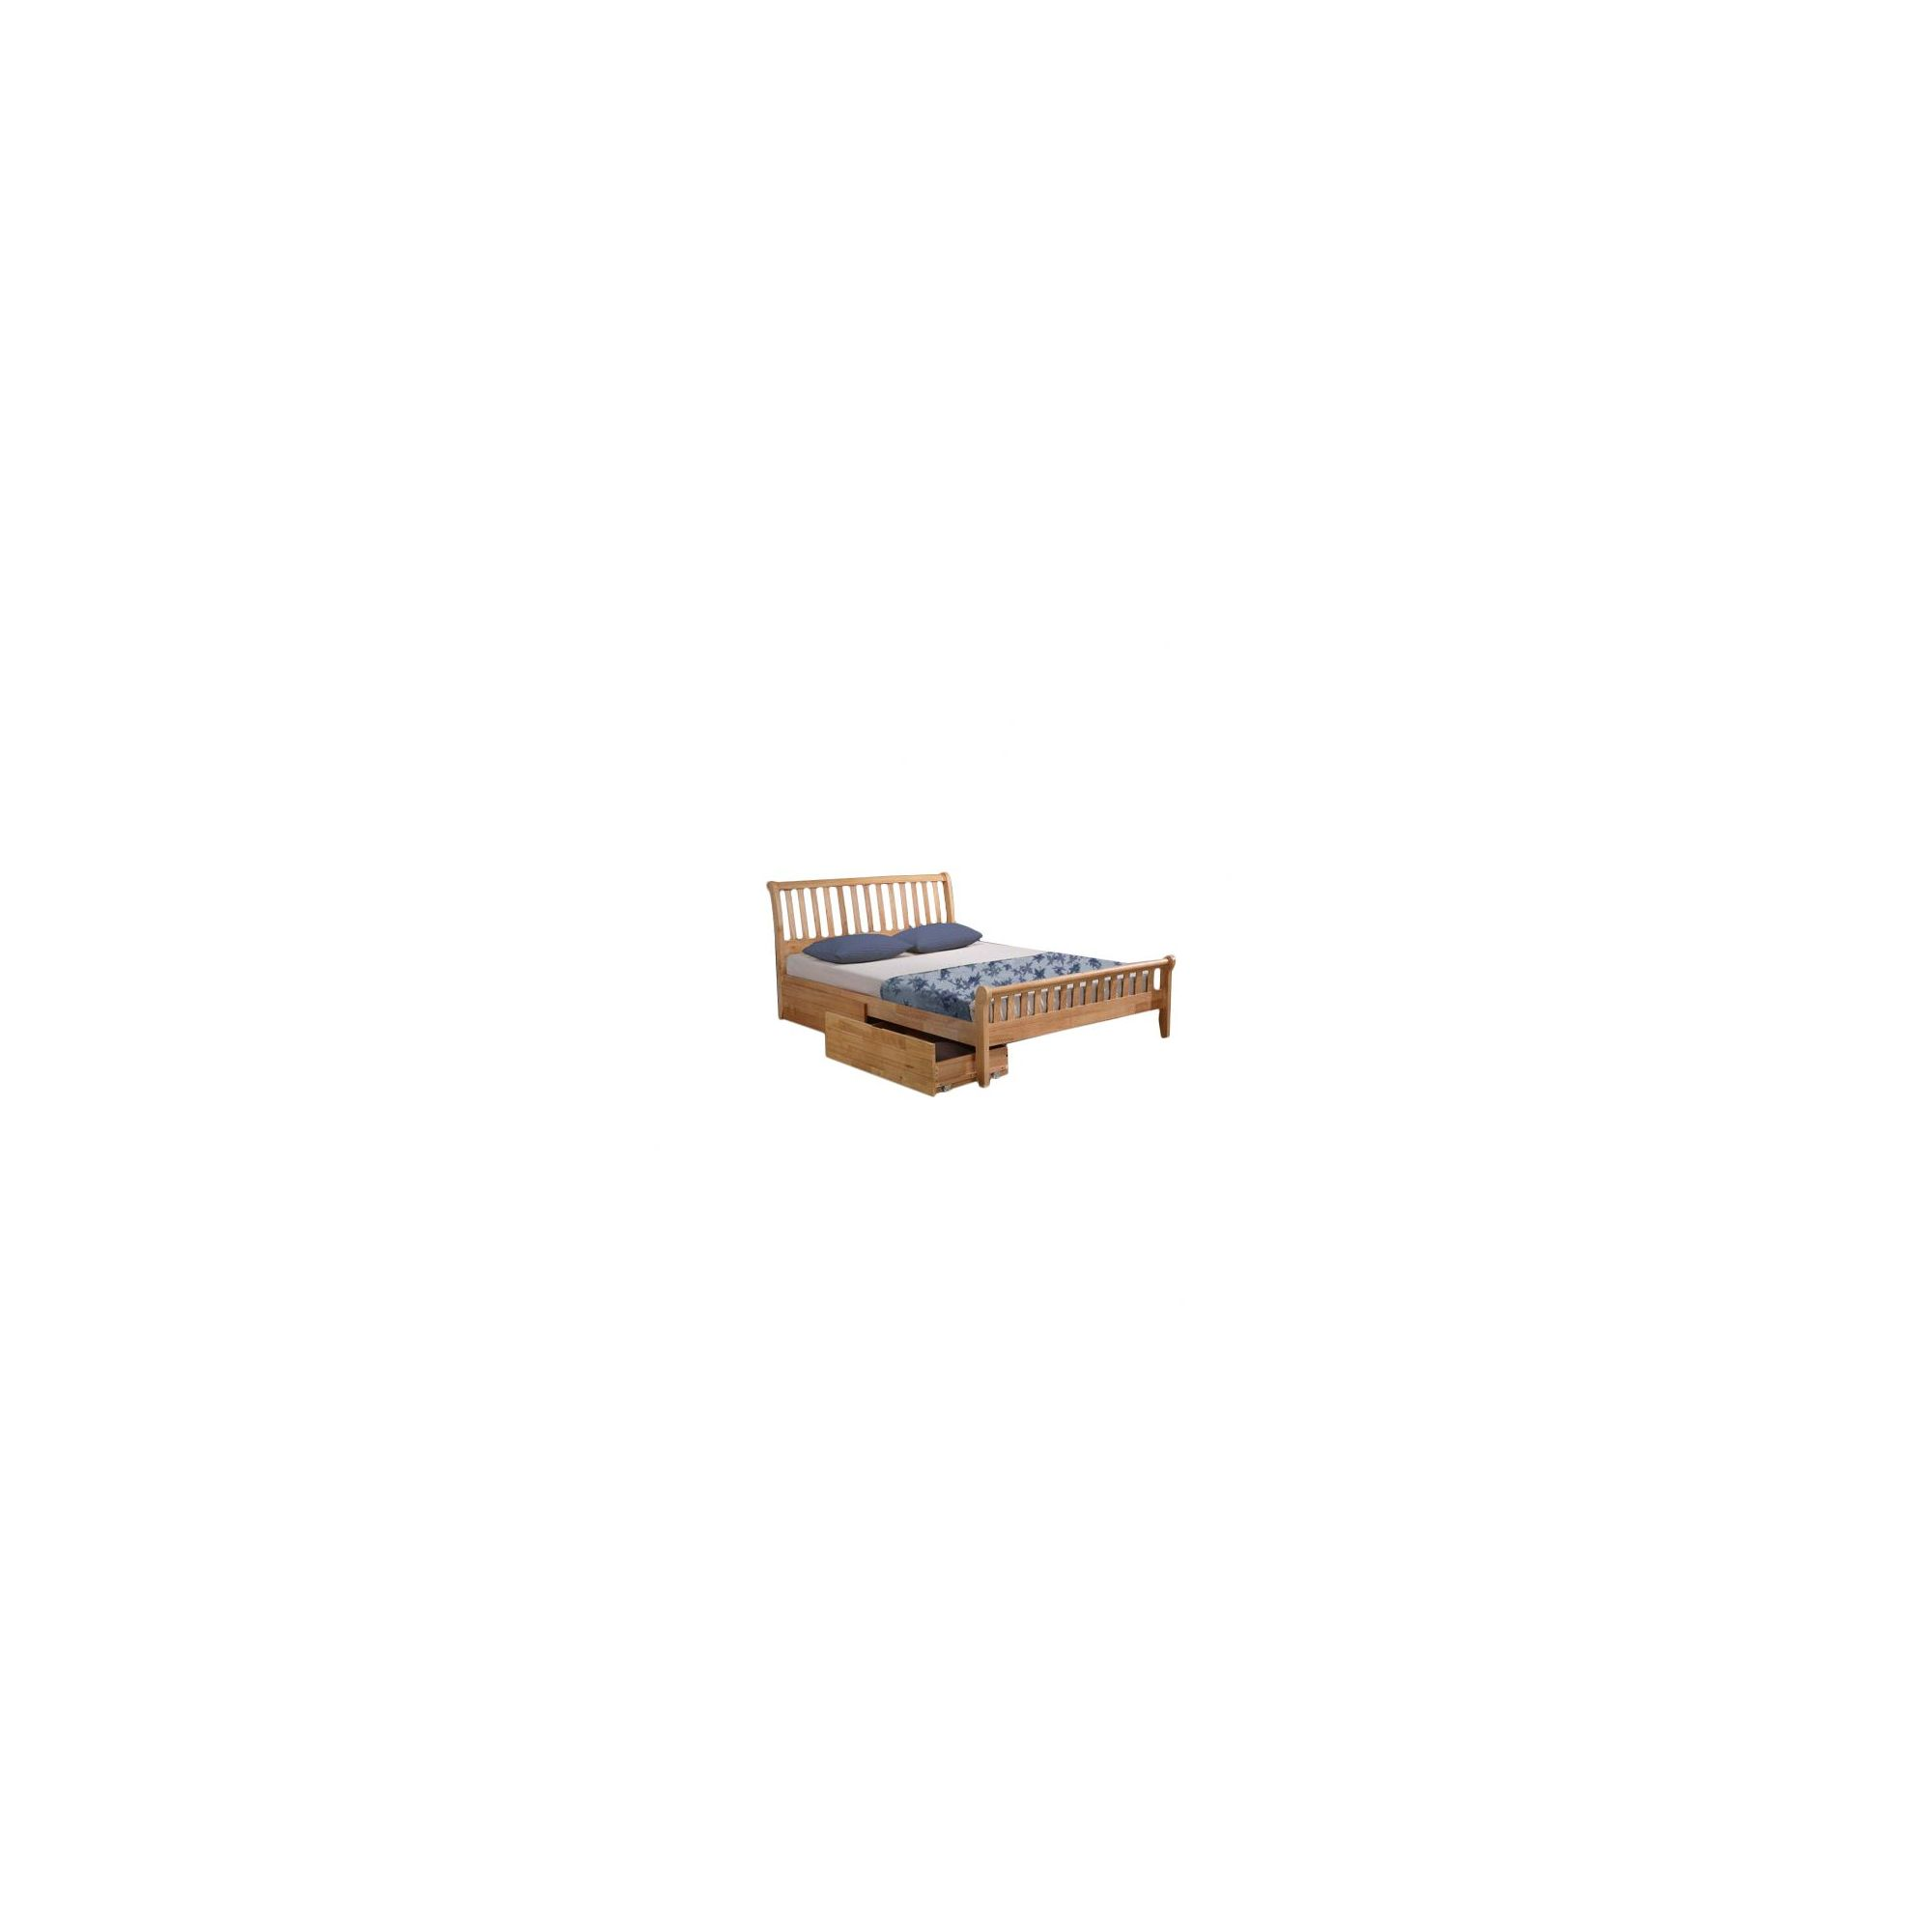 Flintshire Furniture Padeswood Bedstead - Single - With 2 Drawers at Tesco Direct